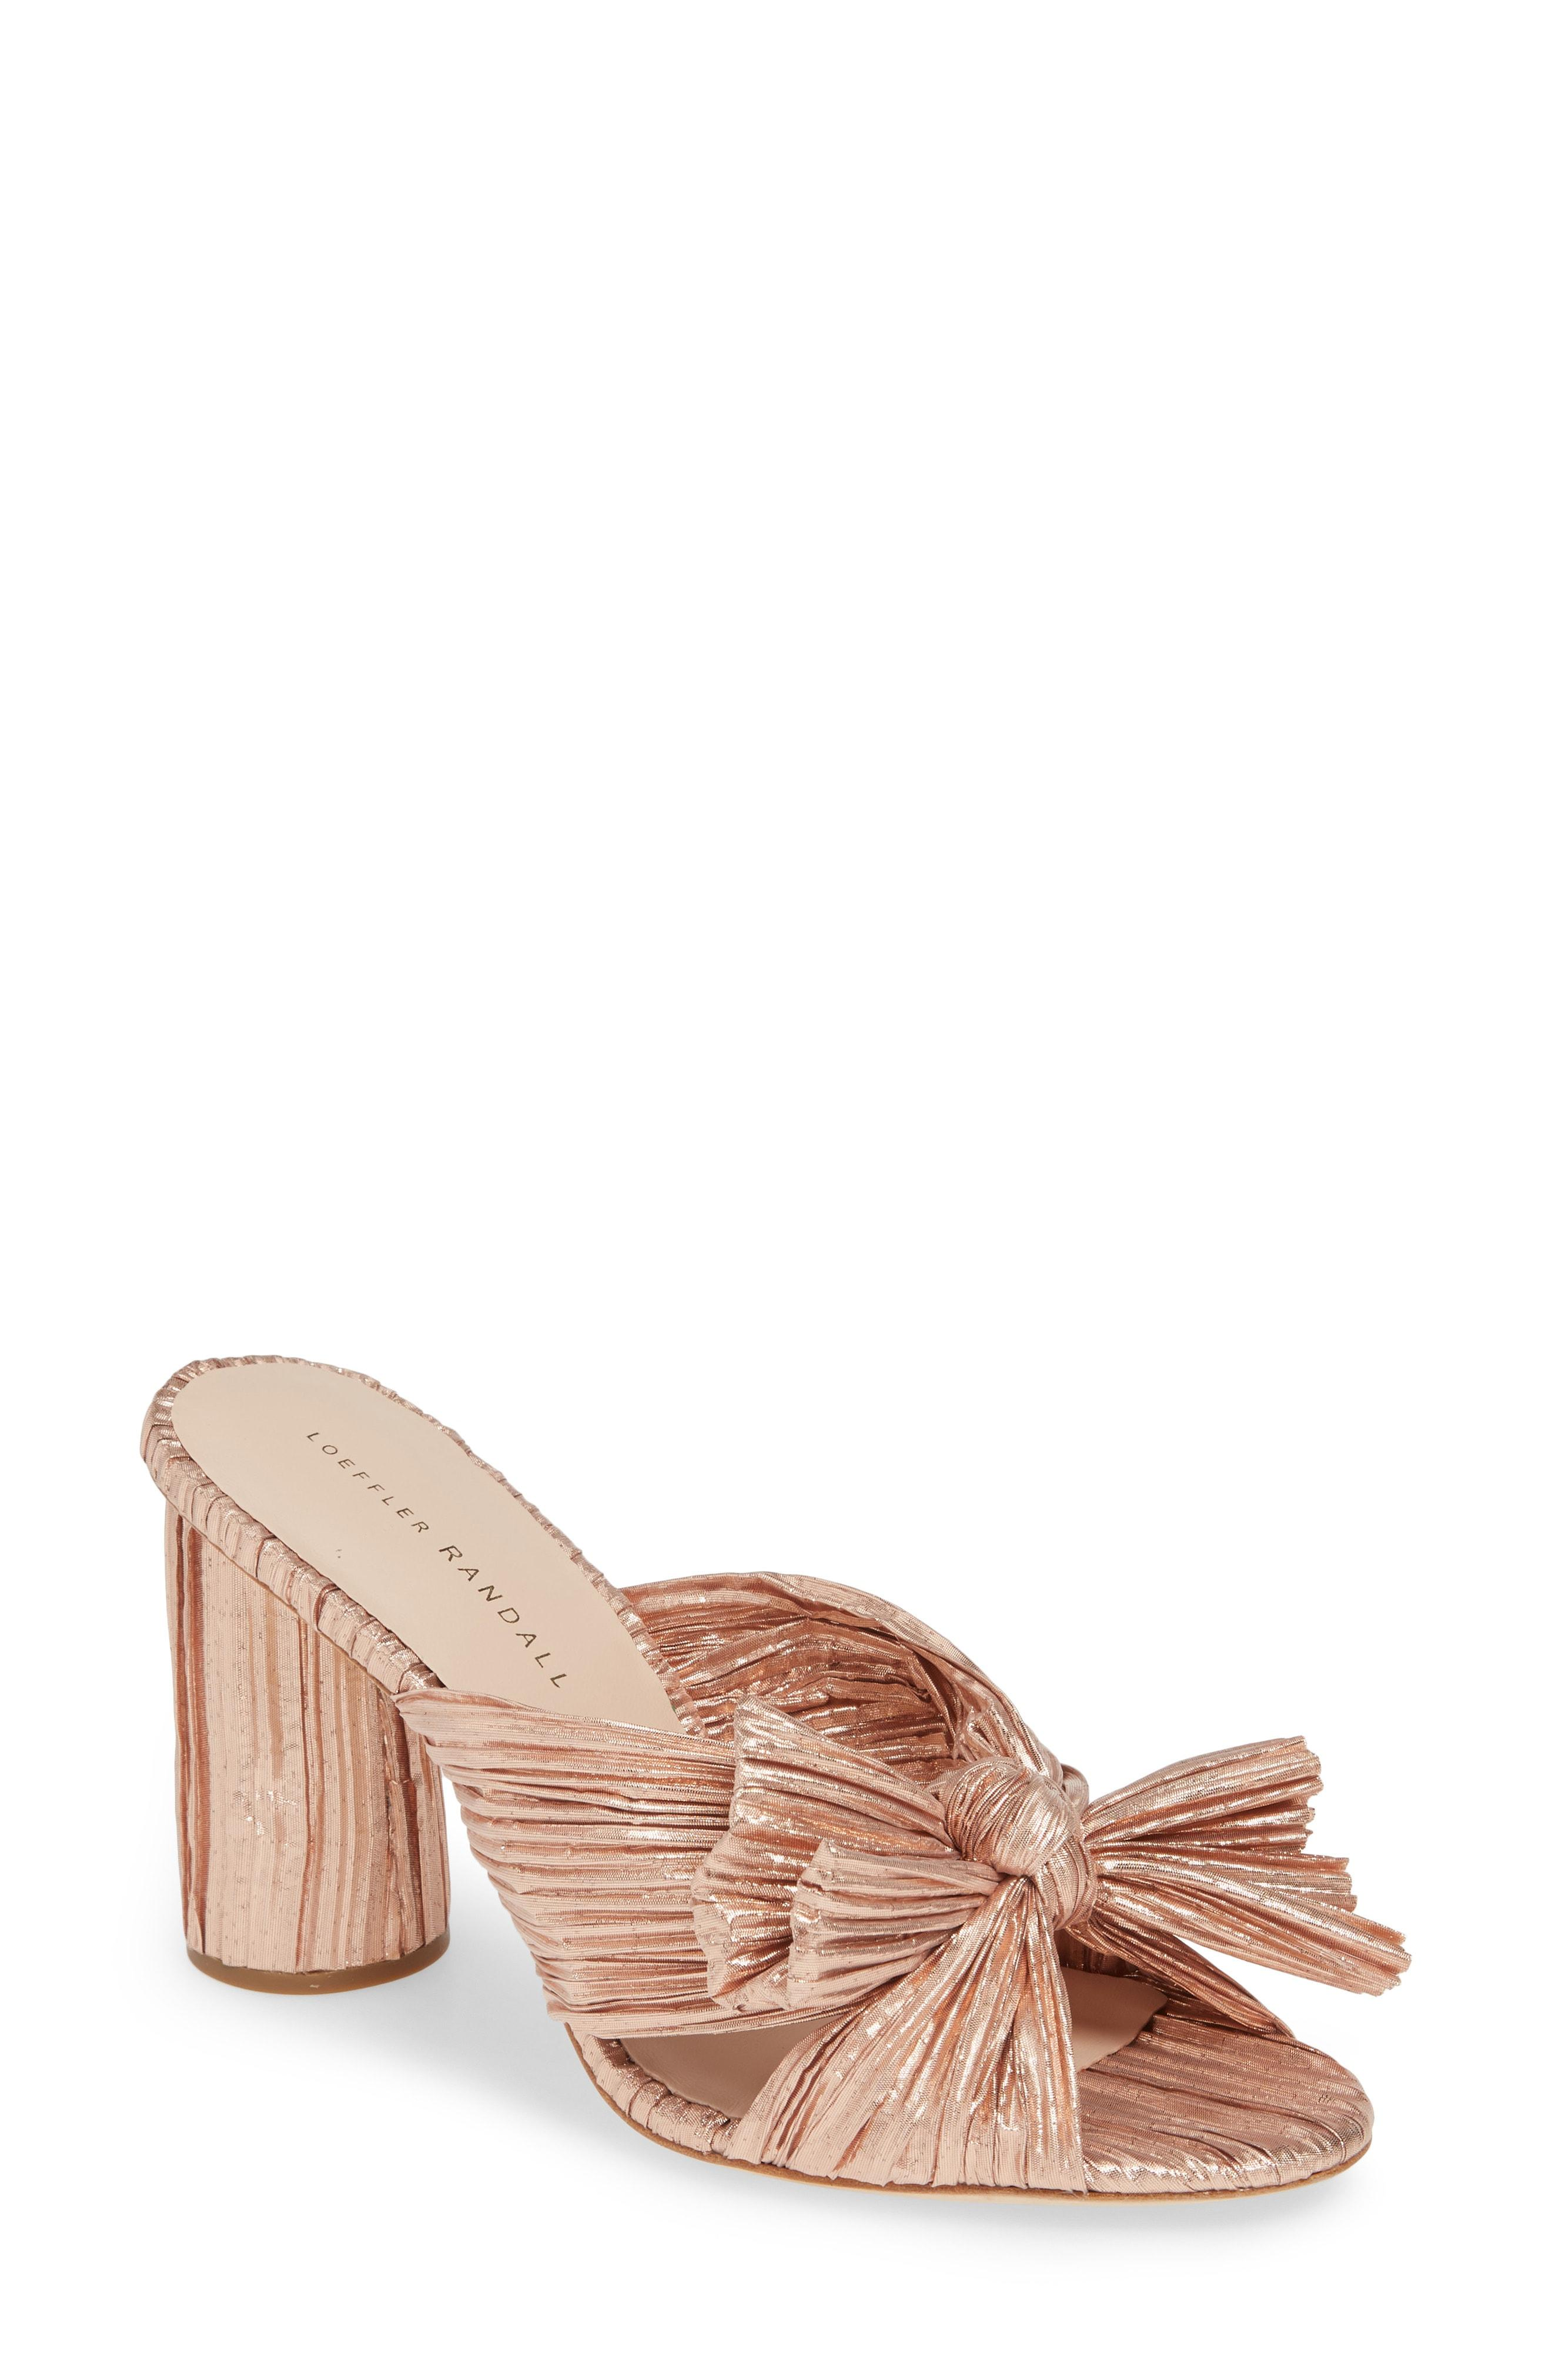 0b070b65d4d Lyst - Loeffler Randall Penny Knotted Lame Sandal in Natural